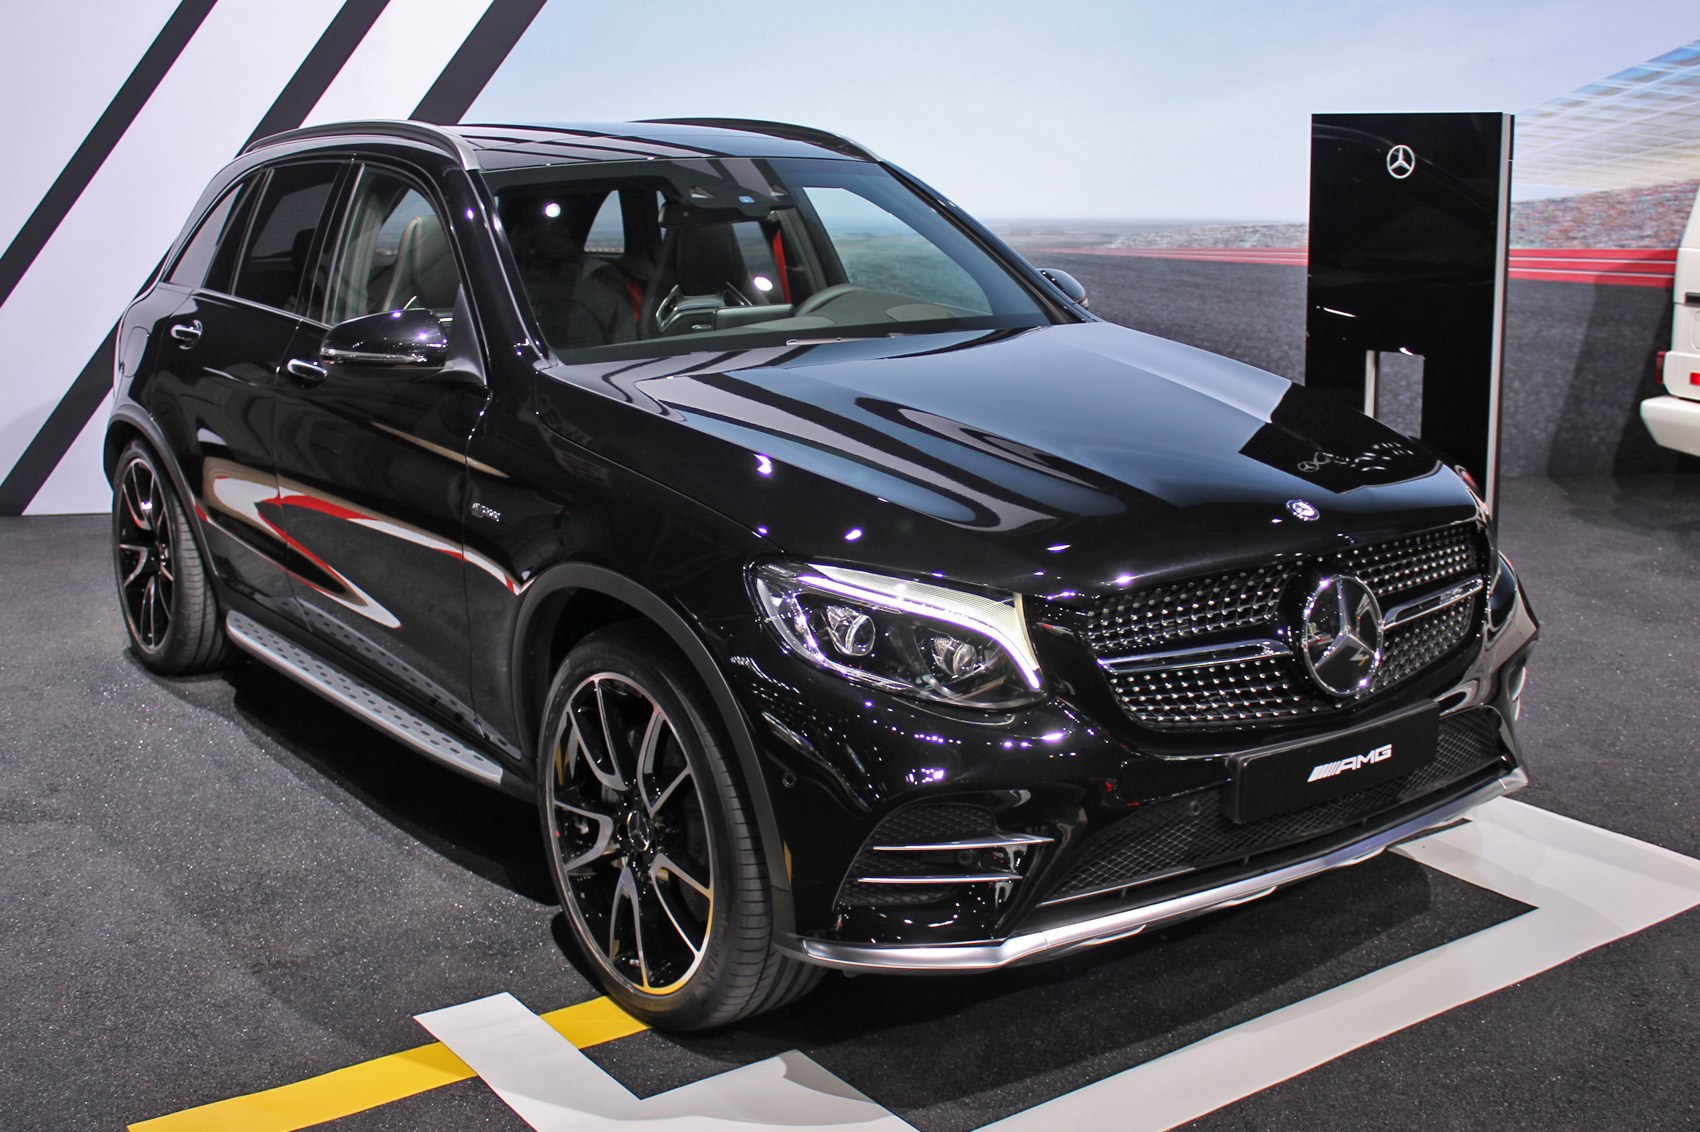 mercedes amg glc 43 4matic is here amg genes for all by car magazine. Black Bedroom Furniture Sets. Home Design Ideas